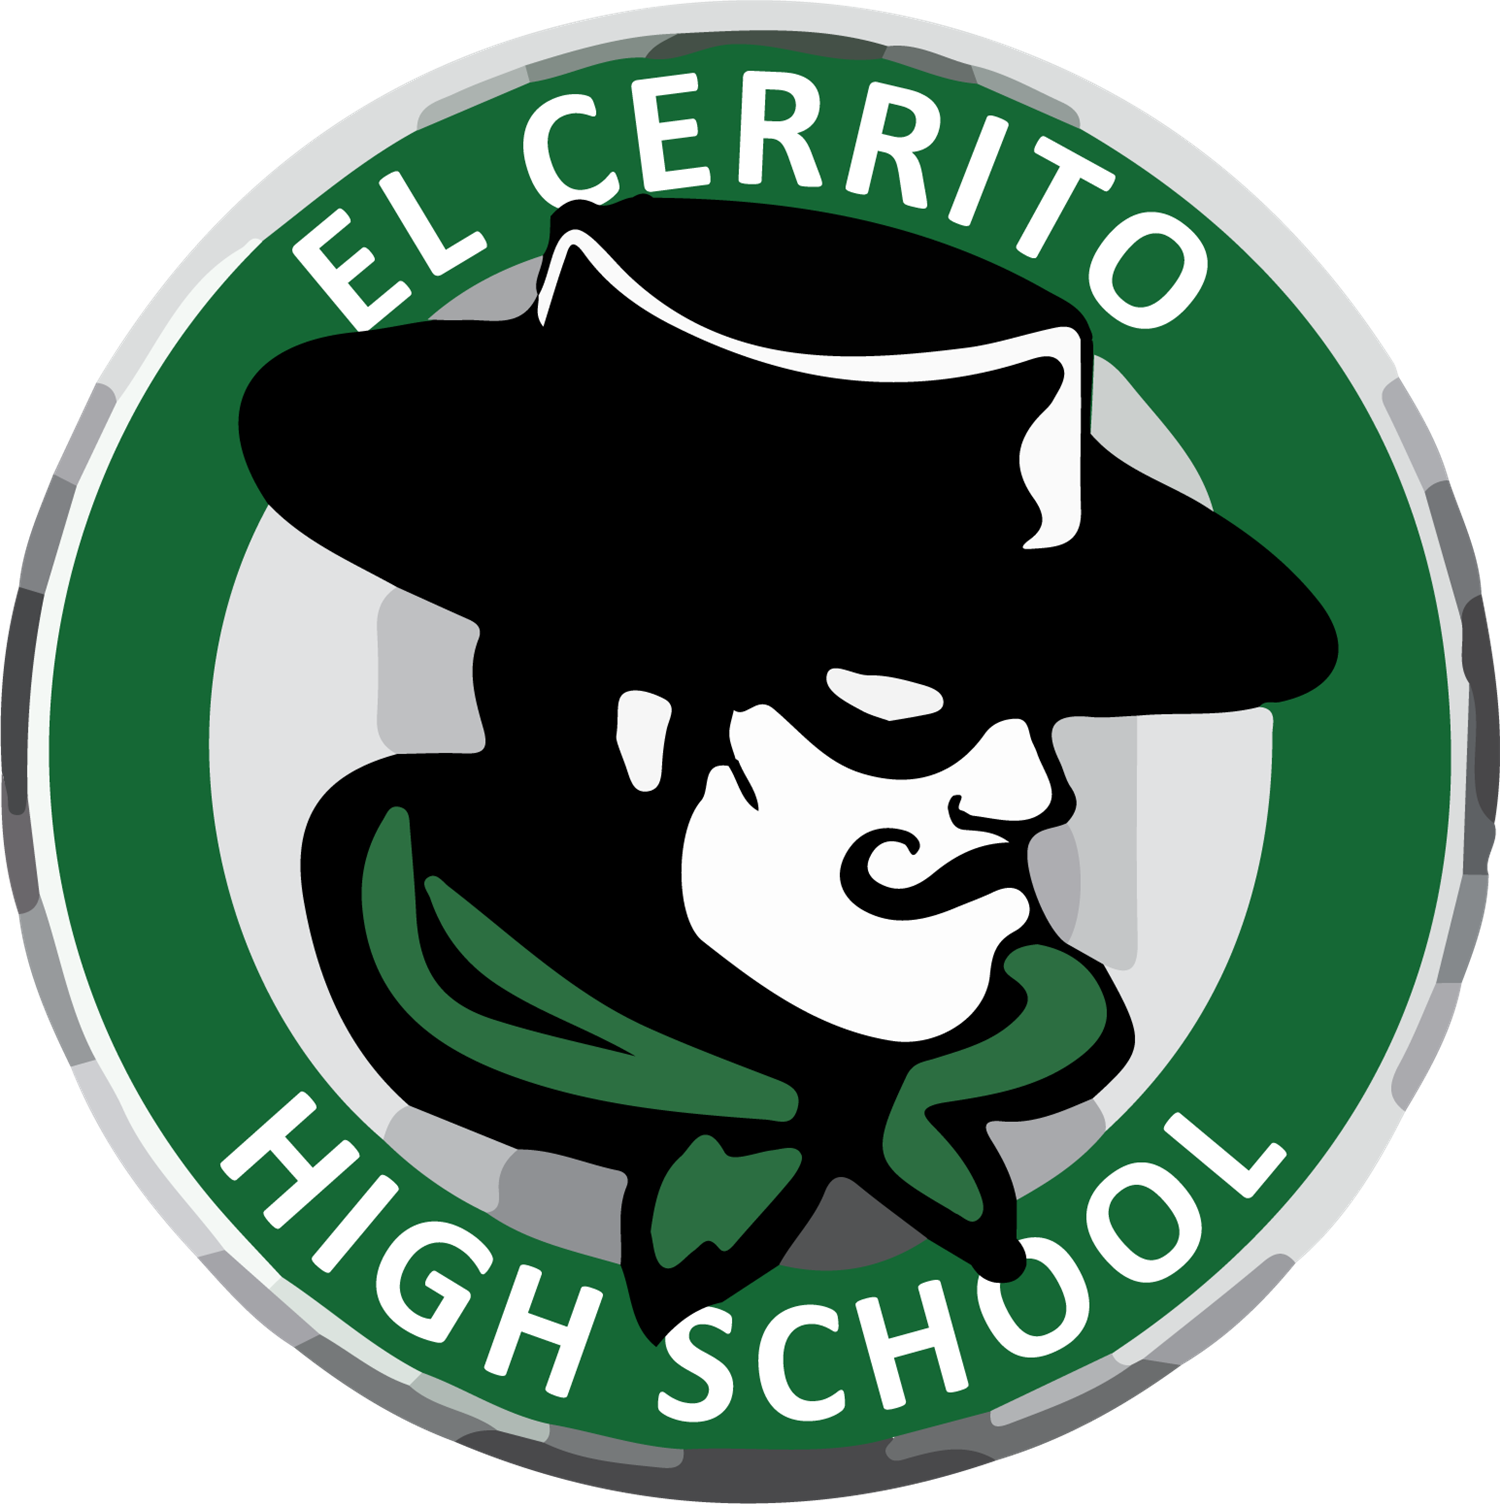 EL CERRITO HIGH SCHOOL- DISTANCE LEARNING QUICK LINKS- UPDATED 8/10/2020